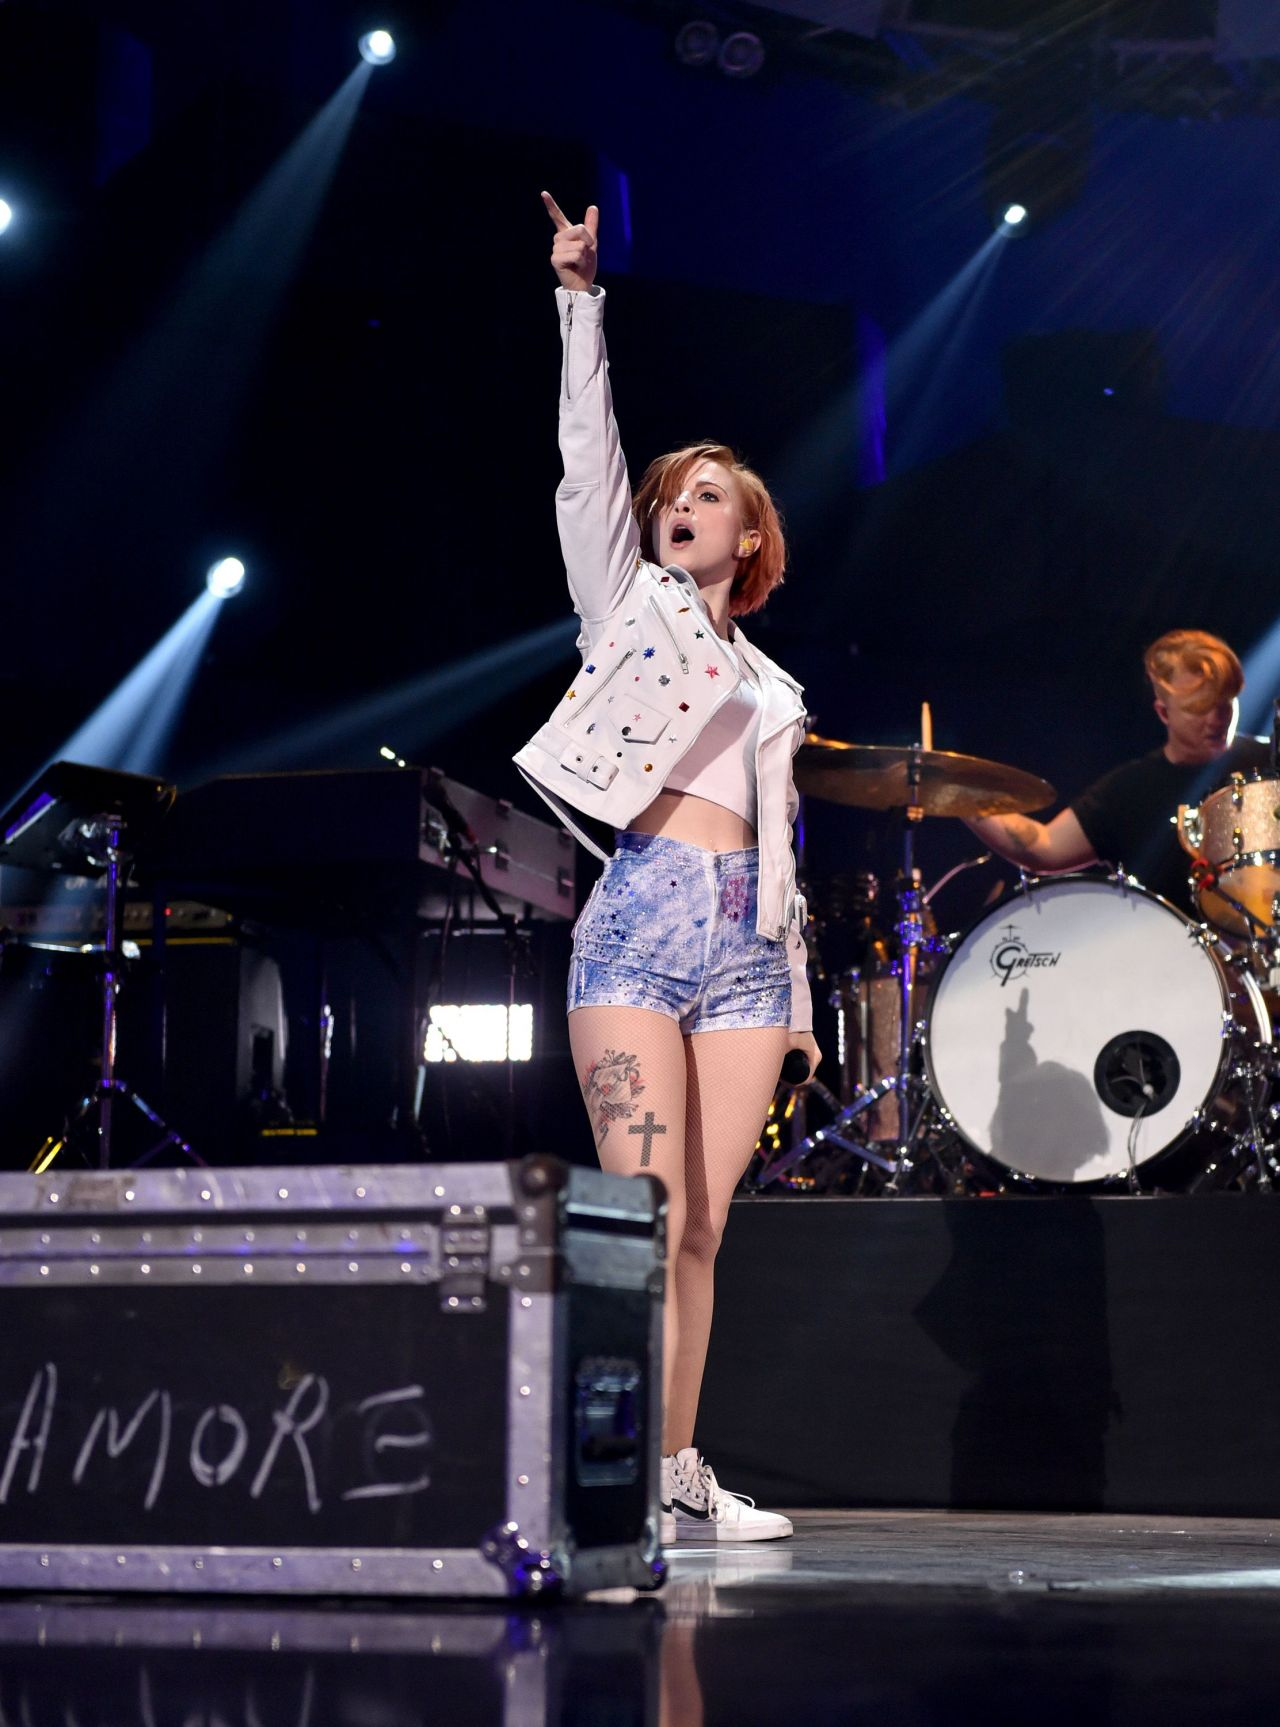 Hayley Williams Performs at 2014 iHeartRadio Music